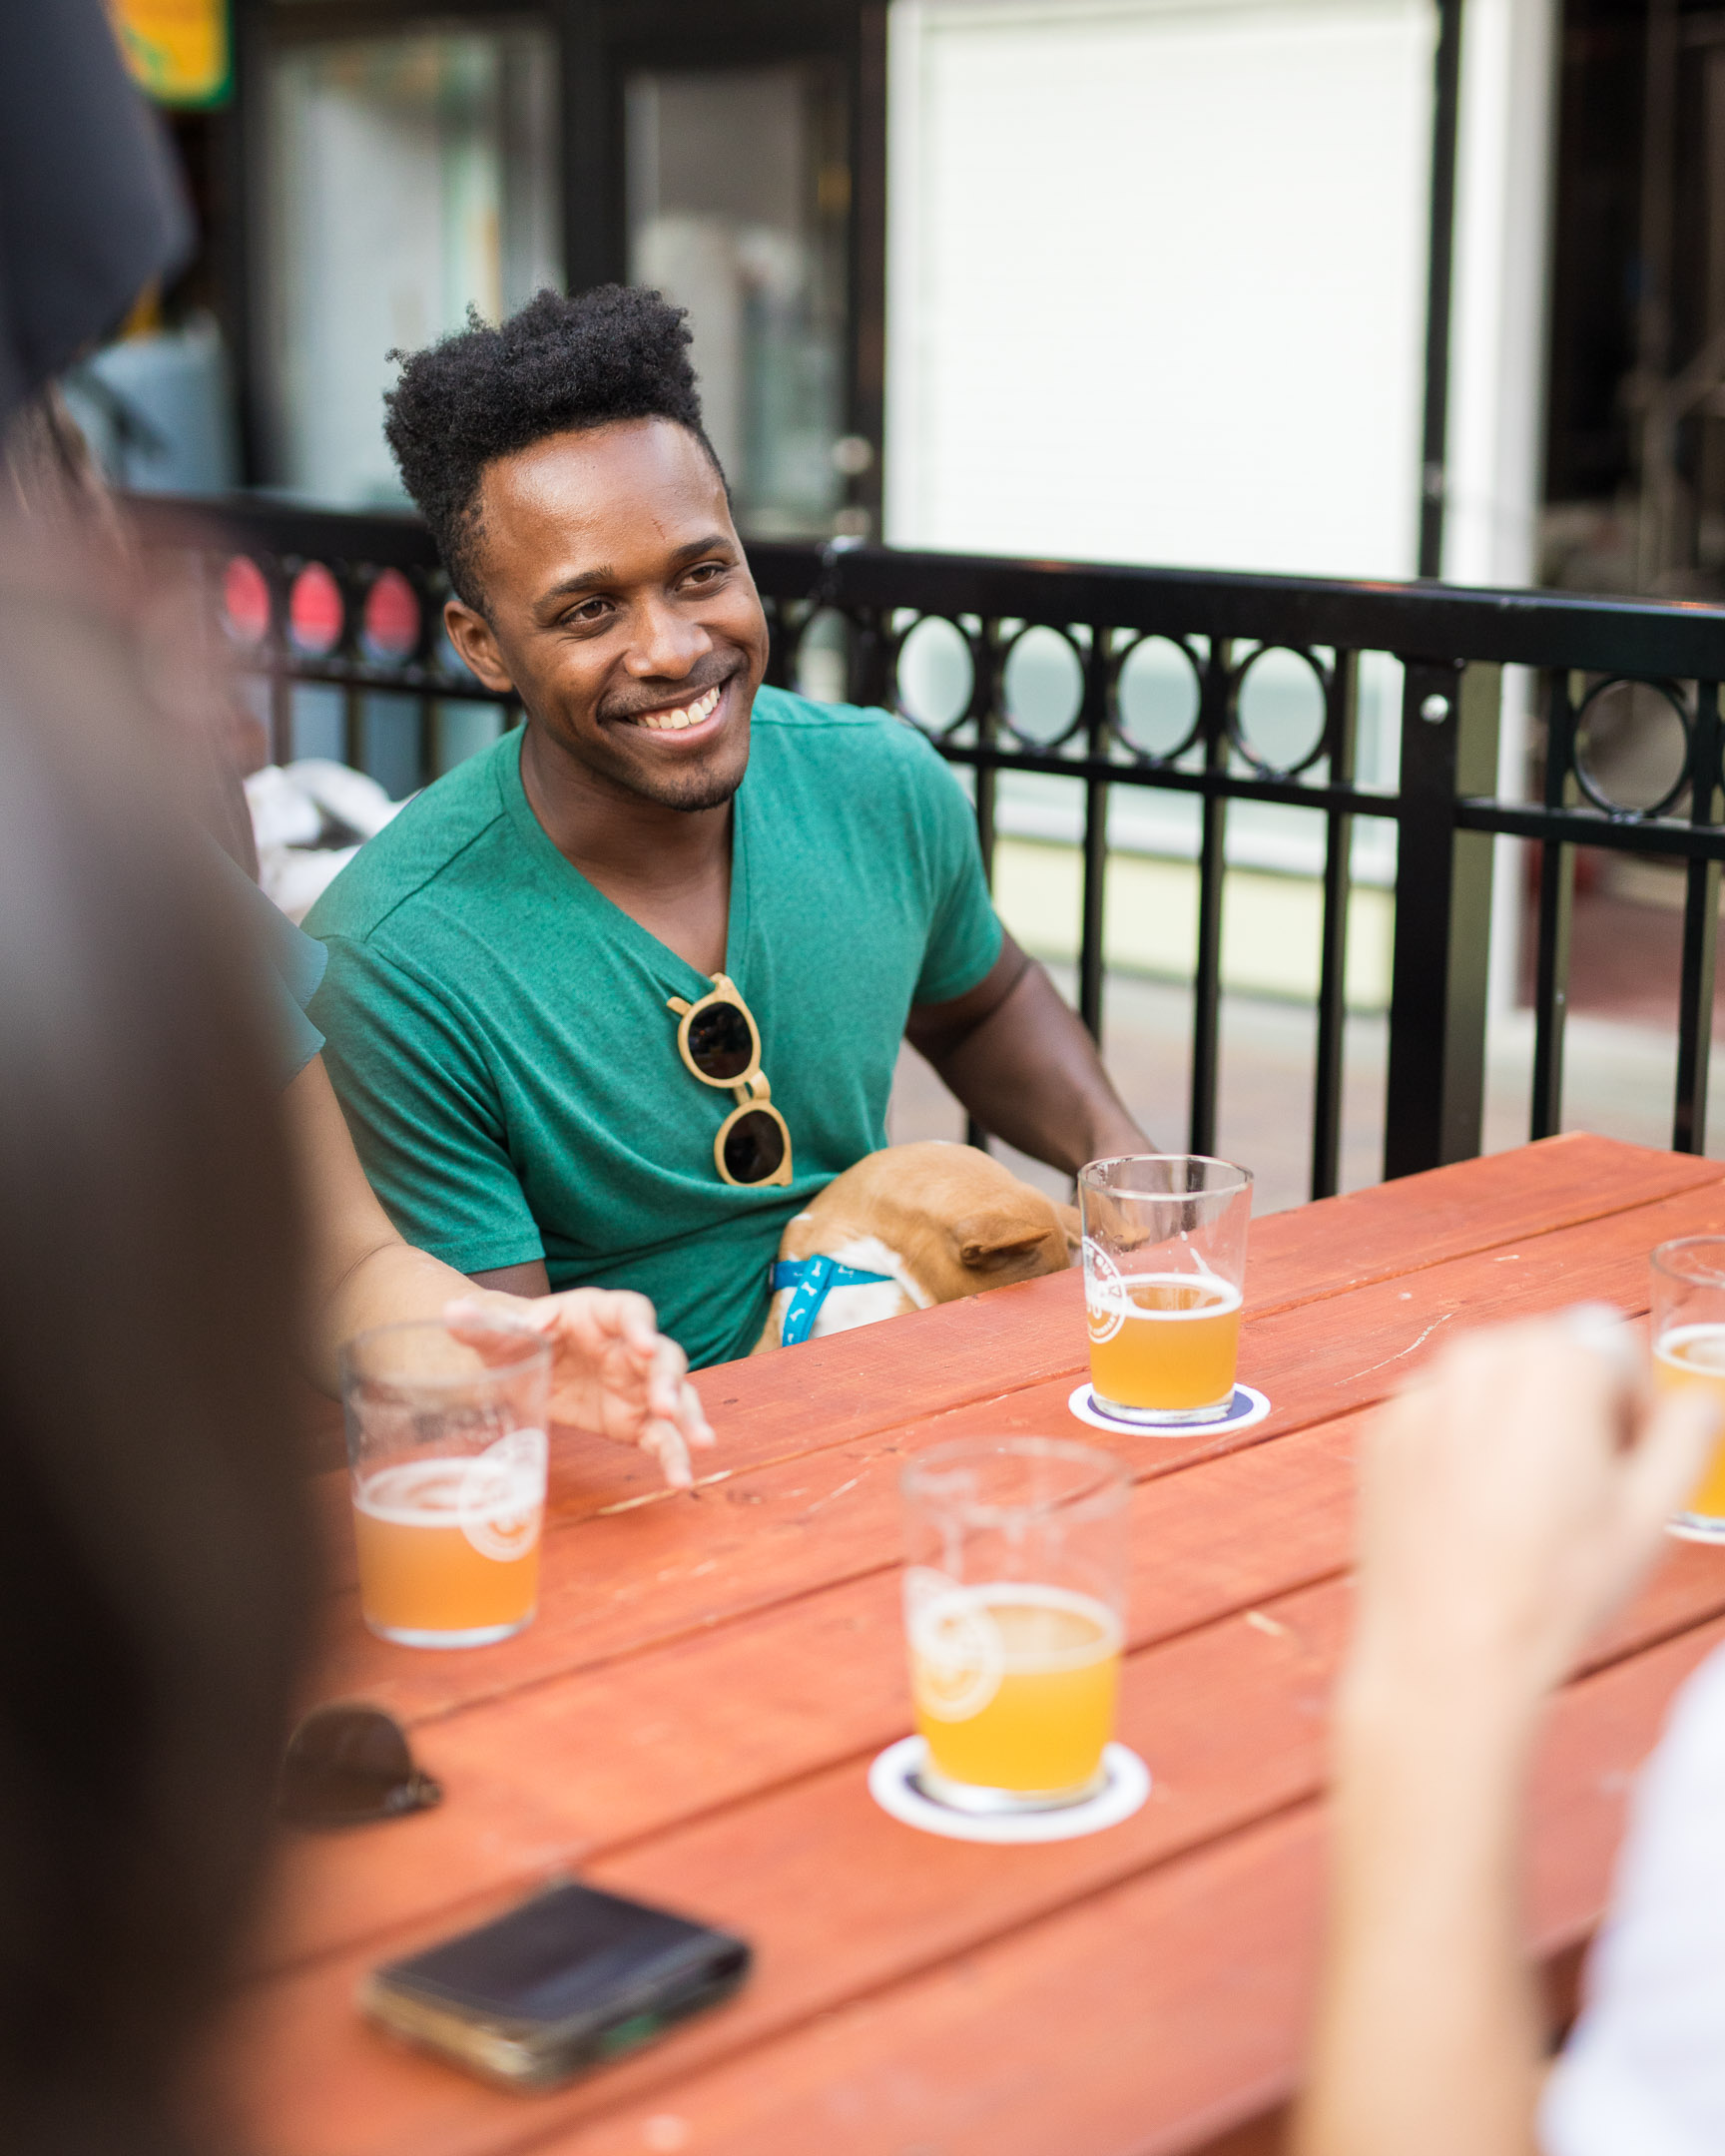 Smiling Guy on Patio